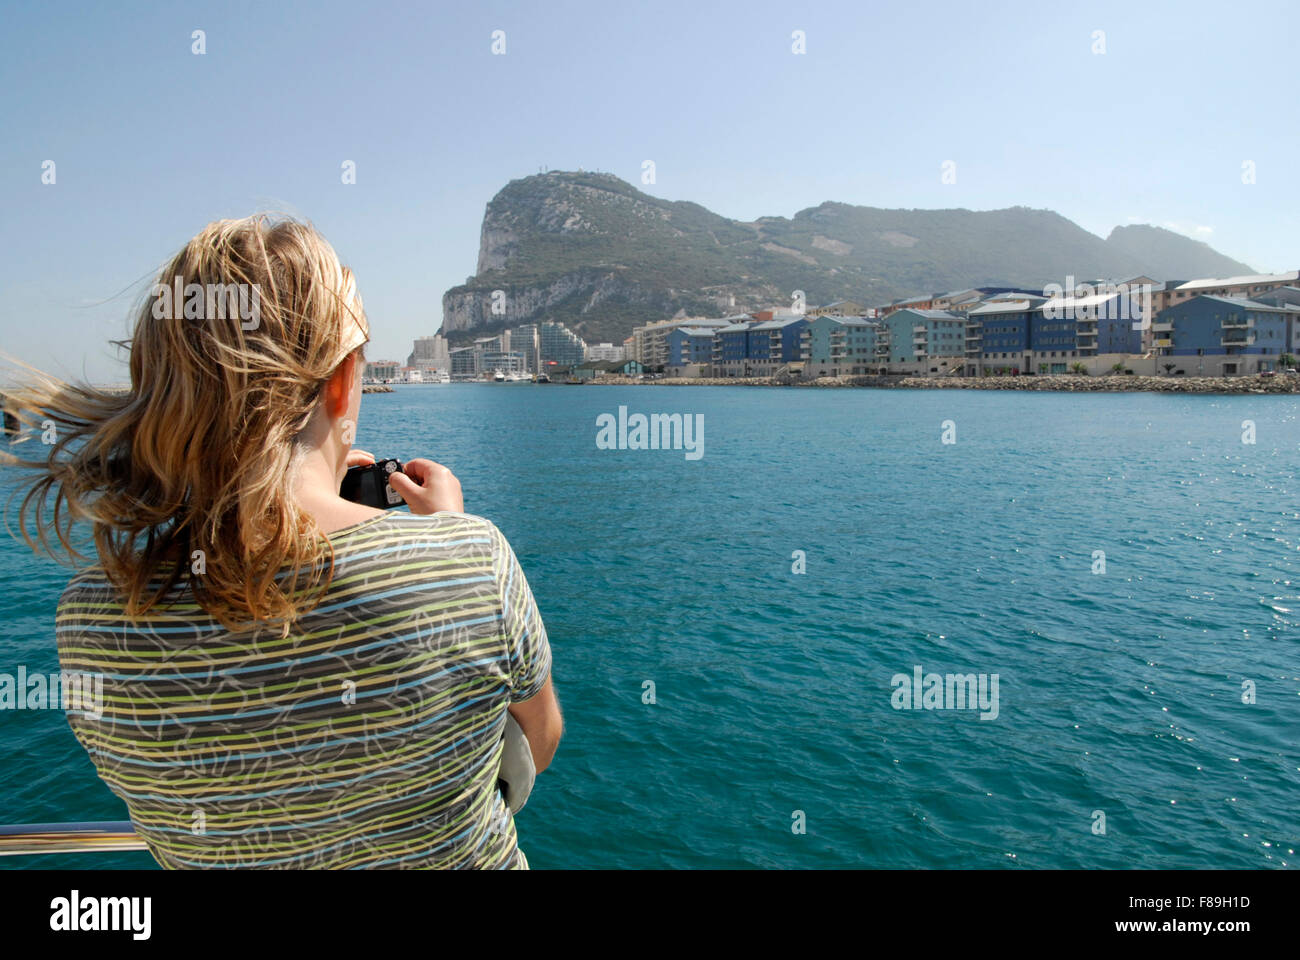 Gibraltar from the sea with the Rock in the background and new development in the middle ground. Tourist in foreground. Stock Photo